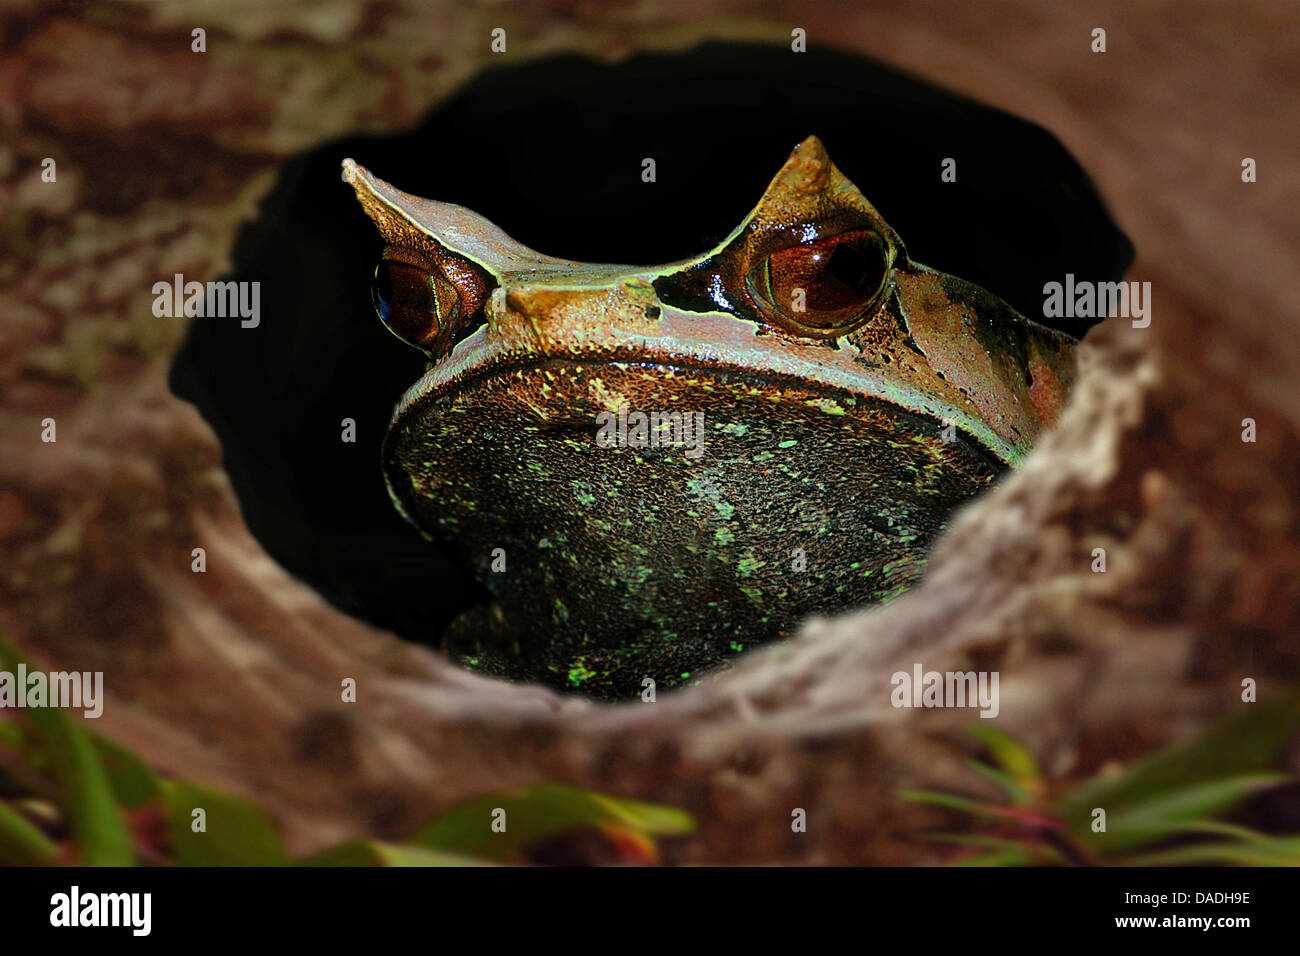 Asian spadefoot toads, horned-nosed frogs, horned toads (Megophrys nasuta), looking through a twig hole, Malaysia - Stock Image